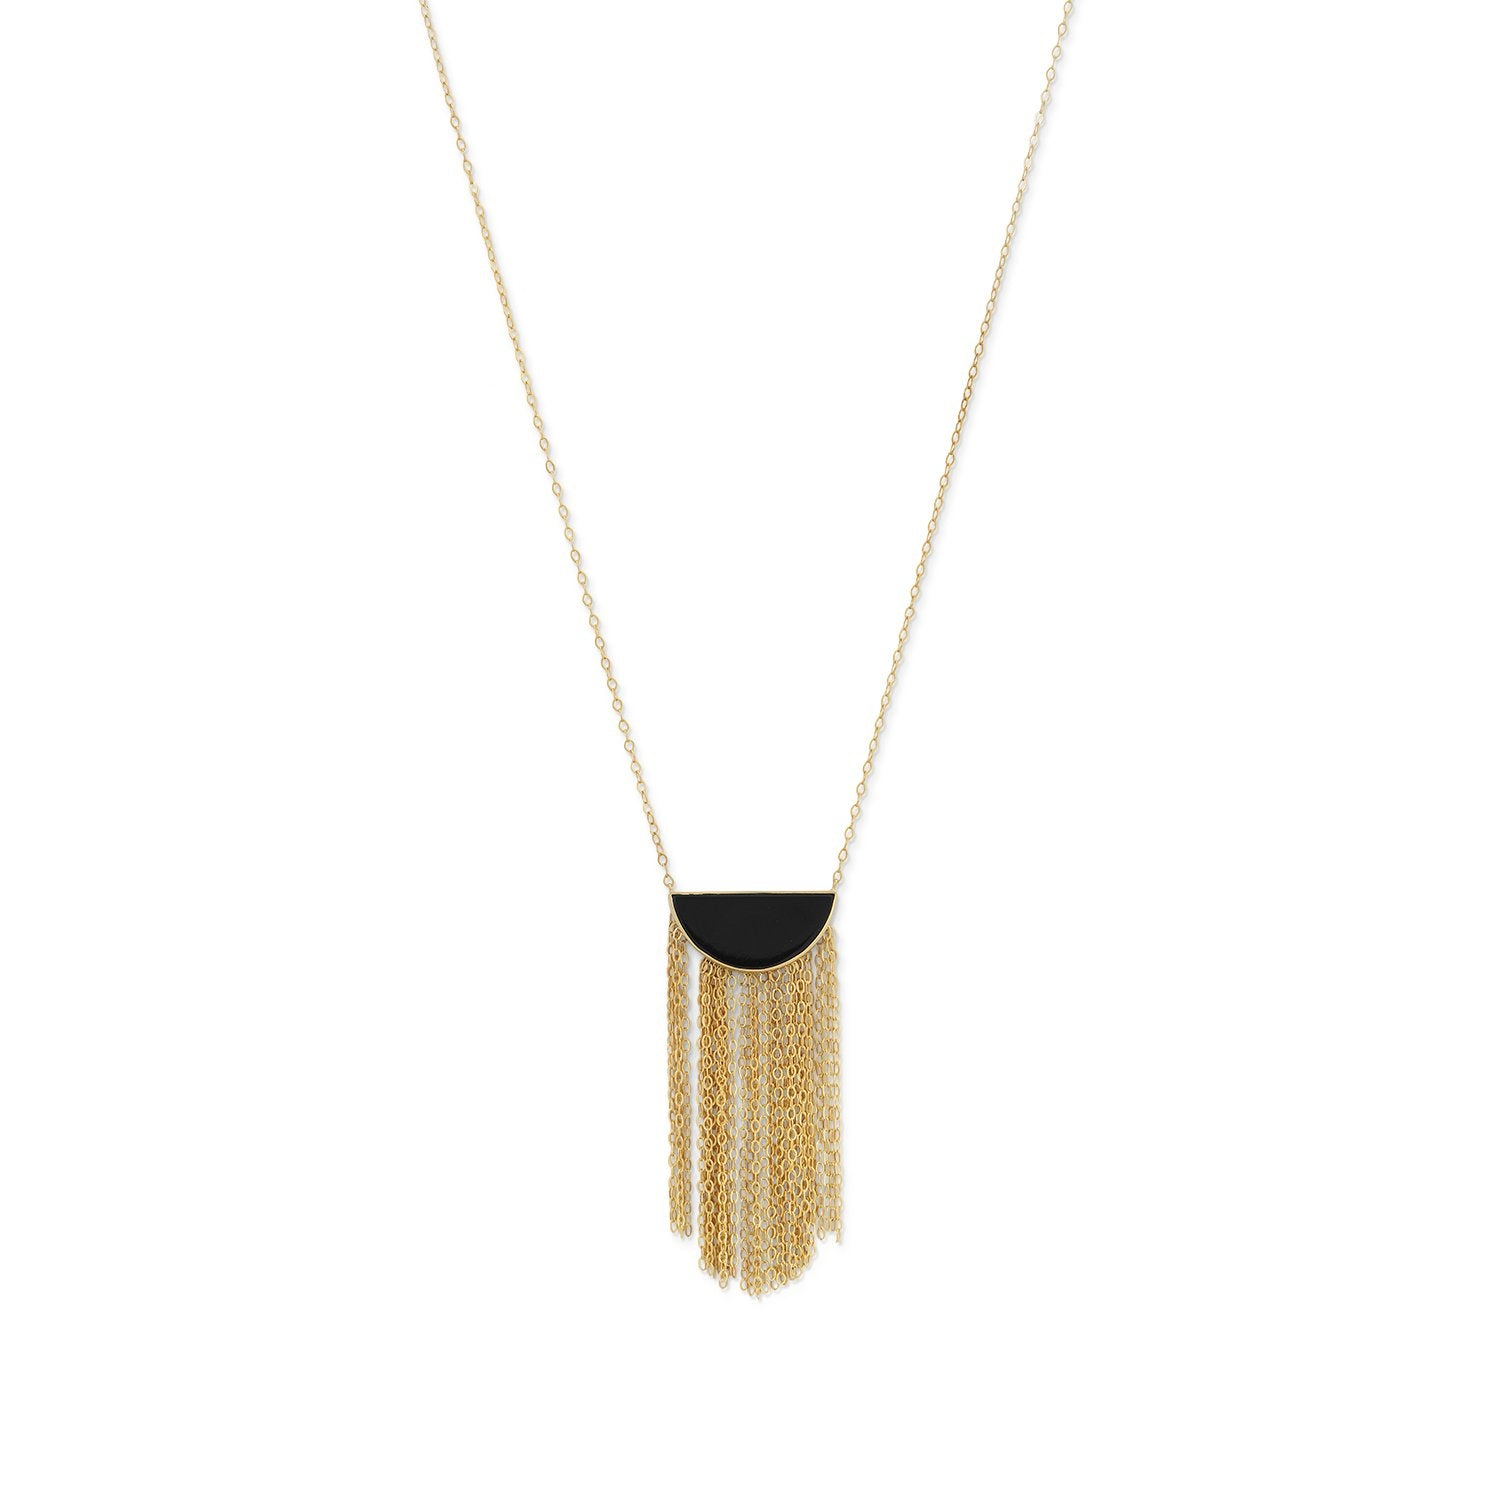 Black Onyx and Fringe Necklace, Necklaces, [GLITIC], [Personalized_Jewelry], [Vegan_Bags]